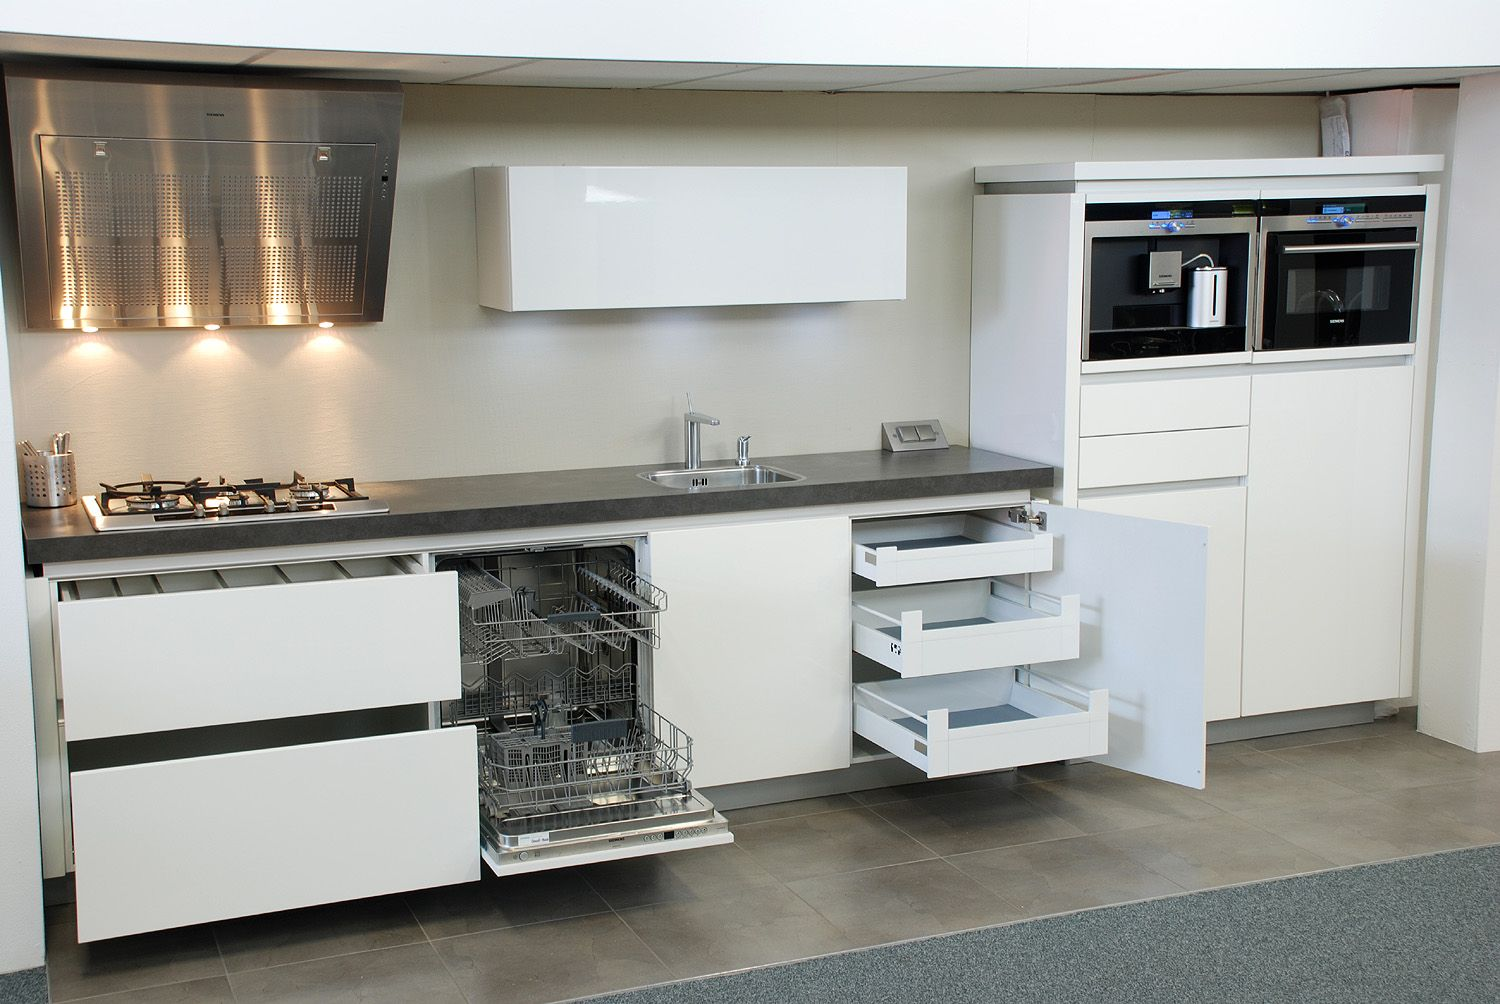 Decoratie Vensterbank Keuken: Moderne keuken decoratie met abstracte ...